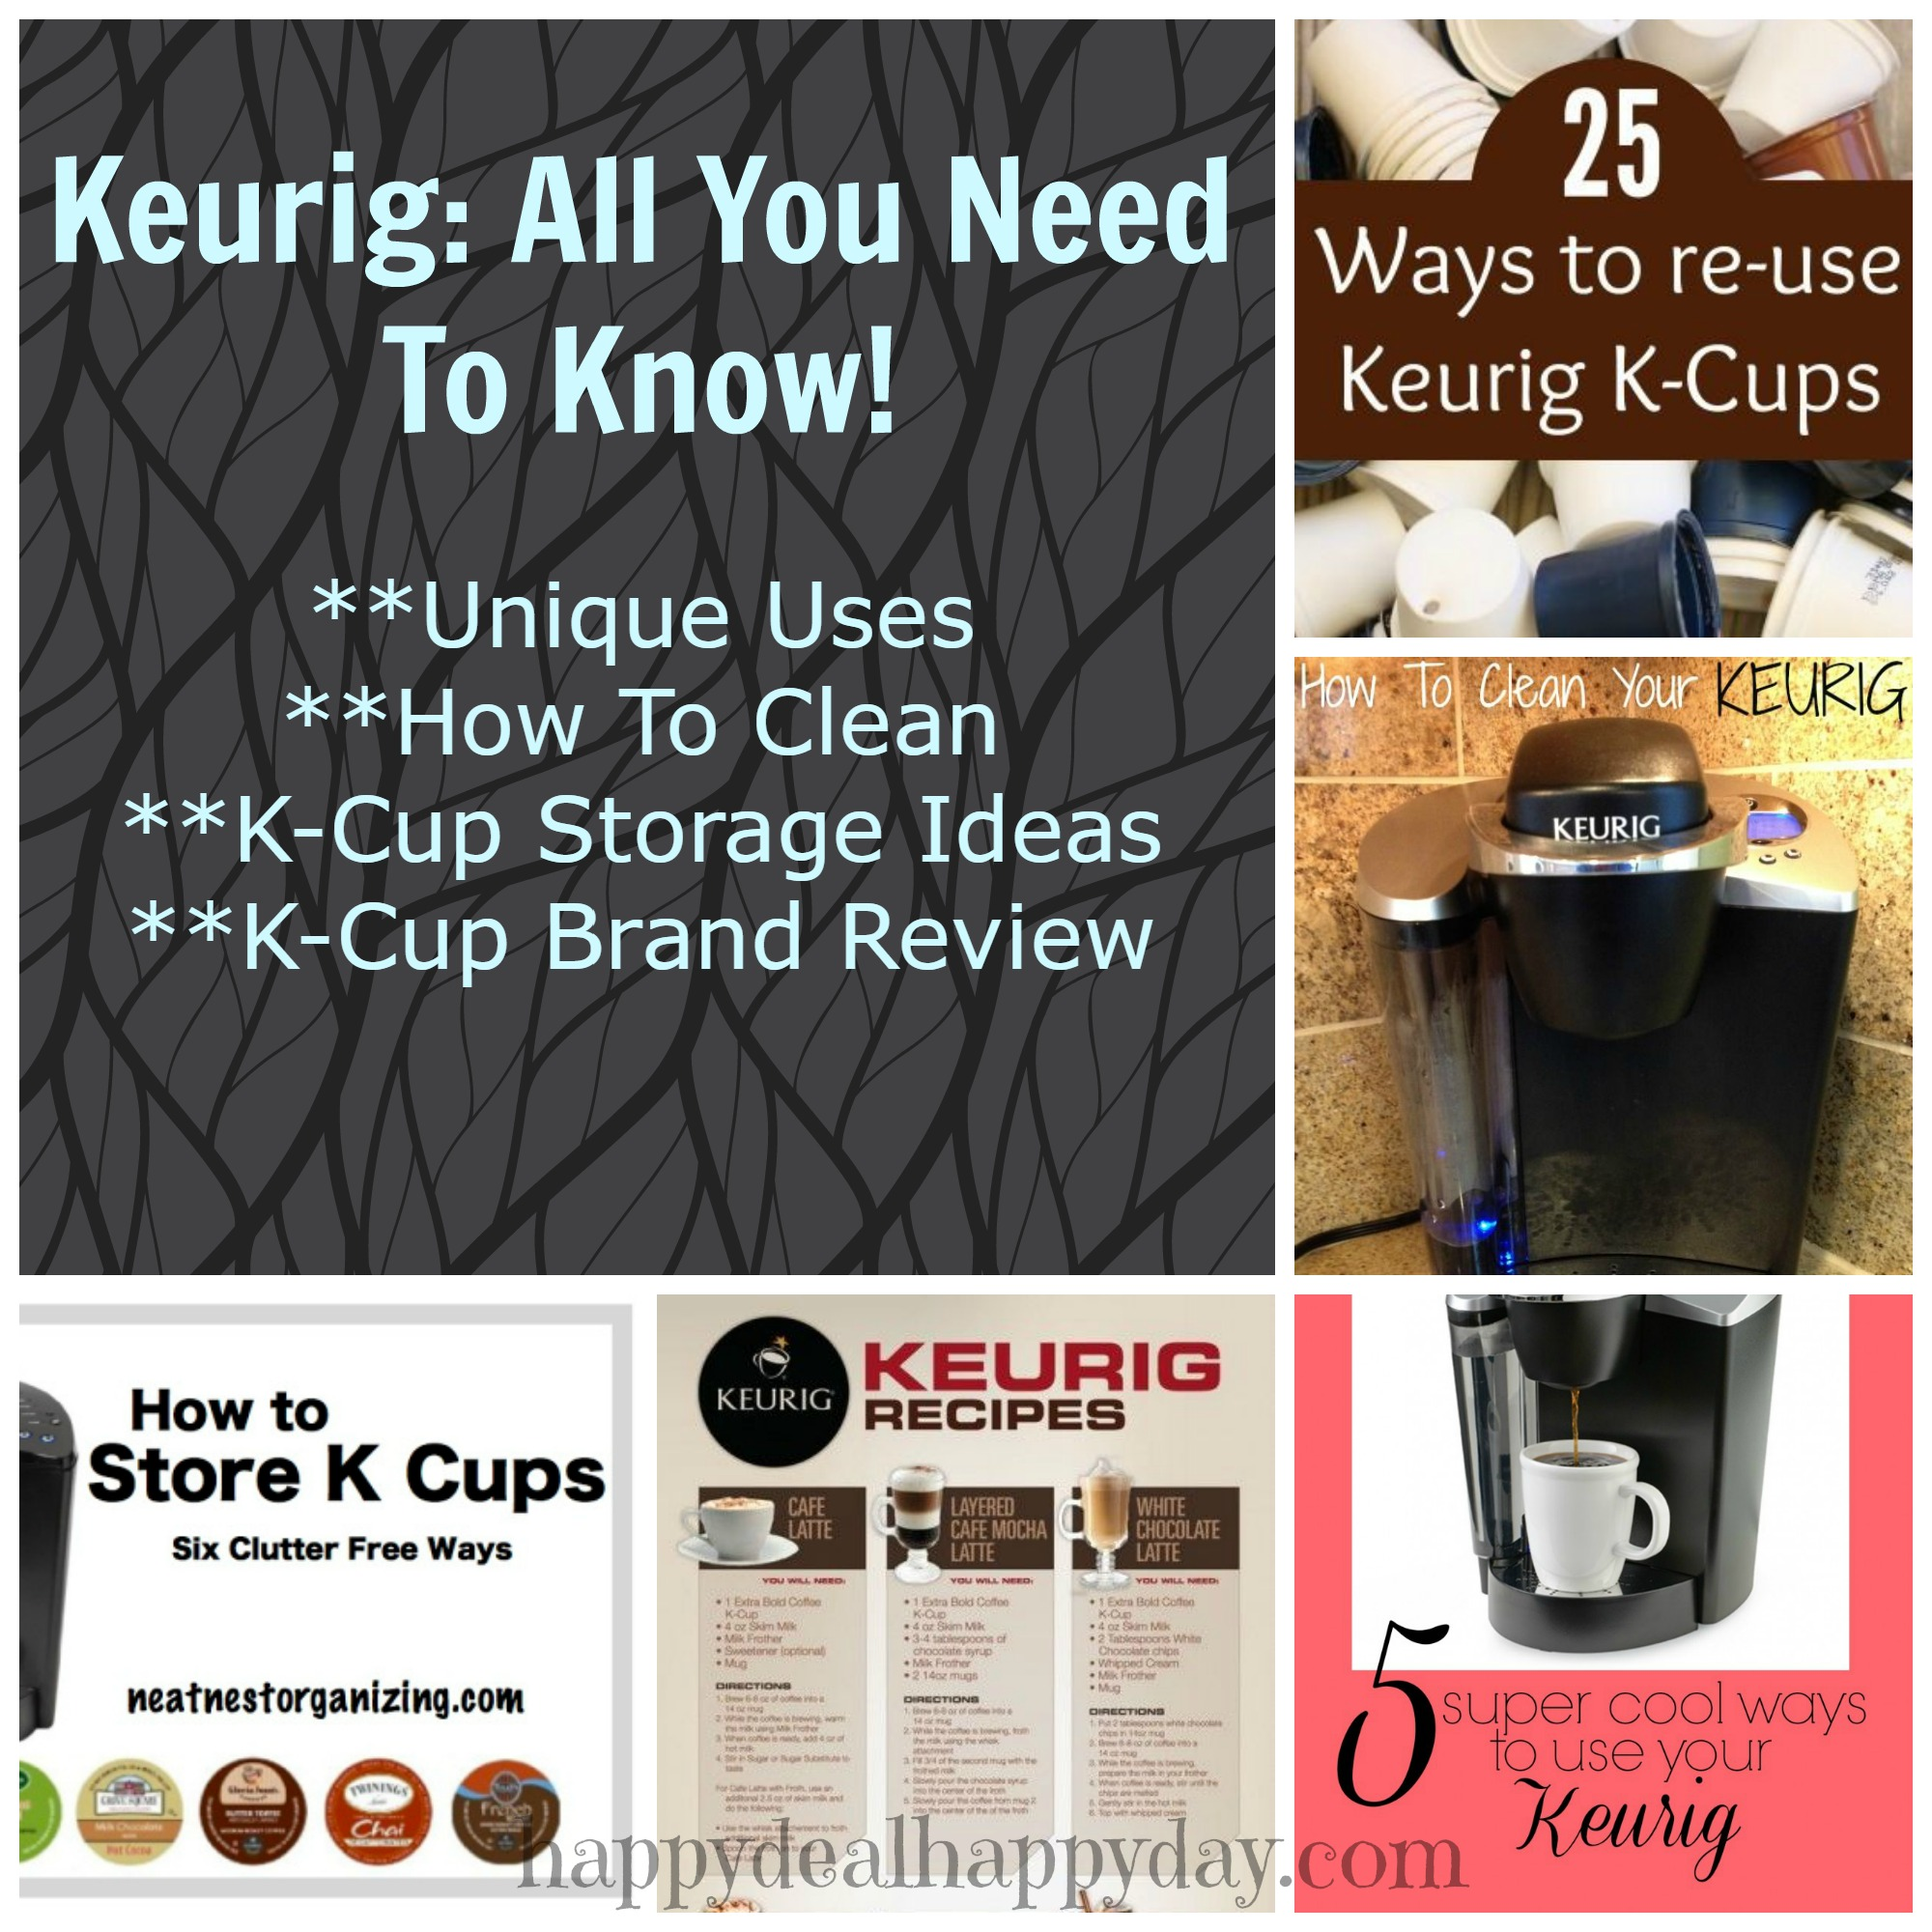 Keurig: All You Need To Know - Who has seriously tried #13????? This post lists Unique Uses, How to Clean, K-Cup Storage Ideas, k-cup crafts, k-cup recipes, and the CHEAPEST K-Cup Brand!